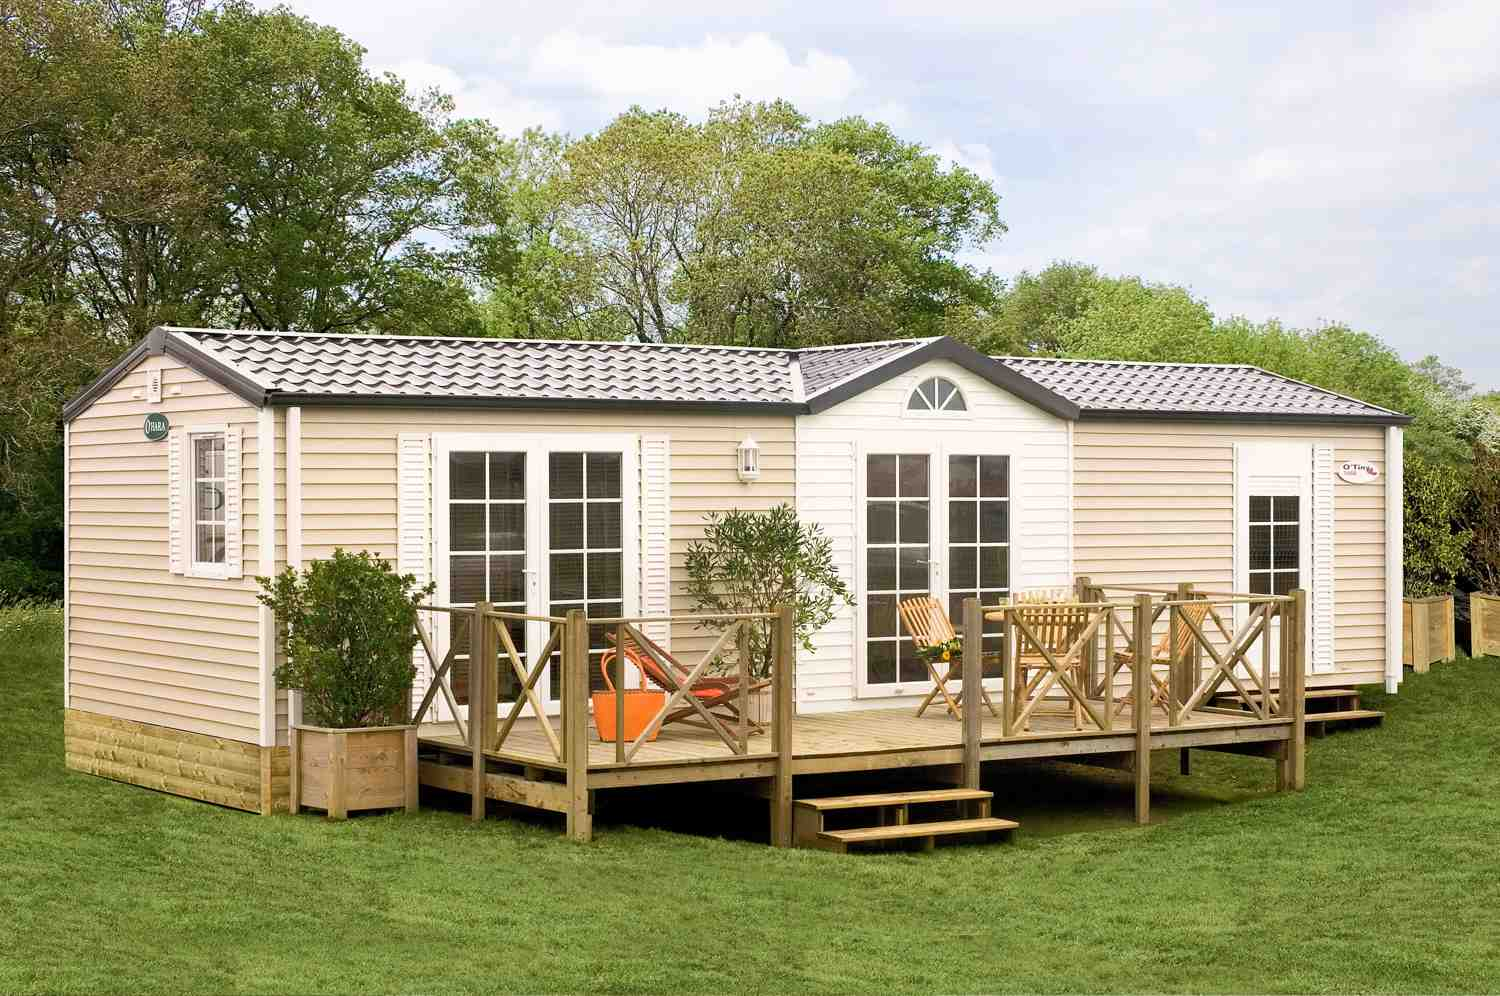 The Best Features For A Great Mobile Home